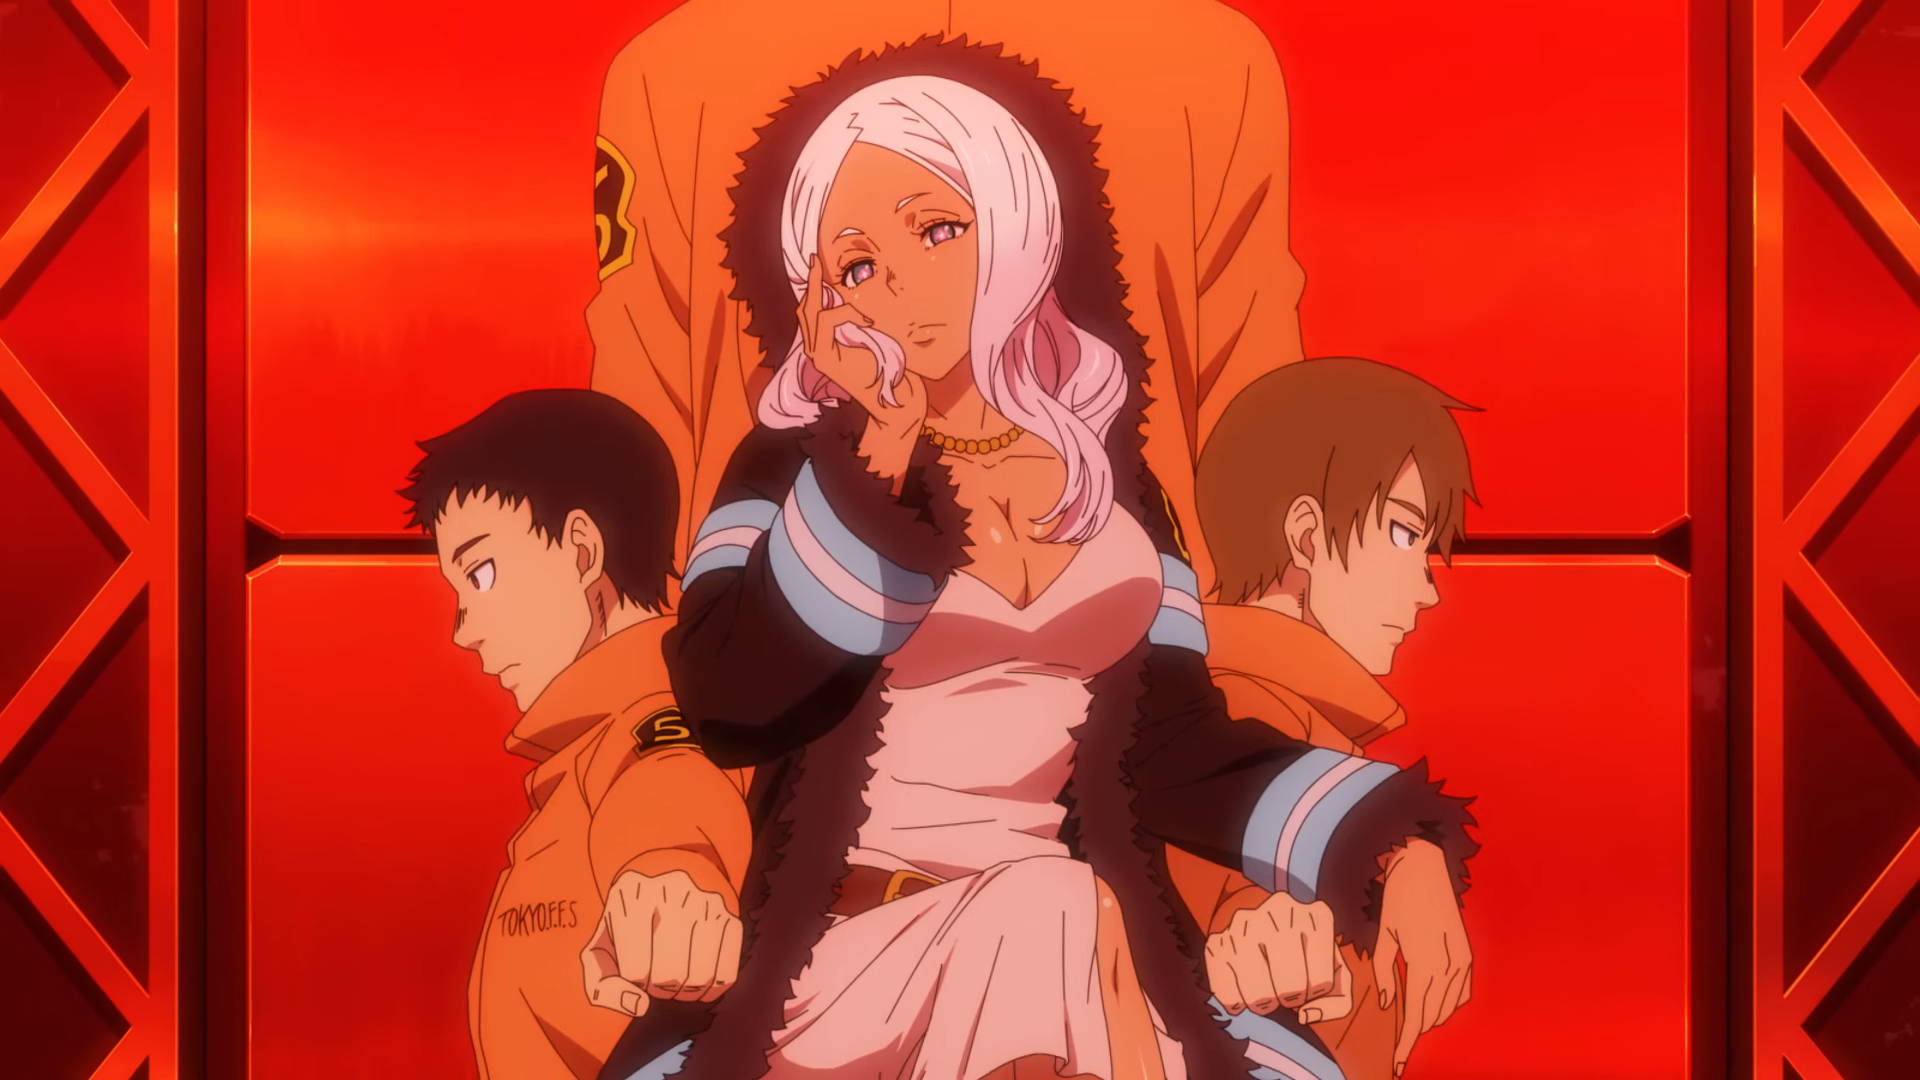 FIRE FORCE EP. 4: THE HERO AND THE PRINCESS